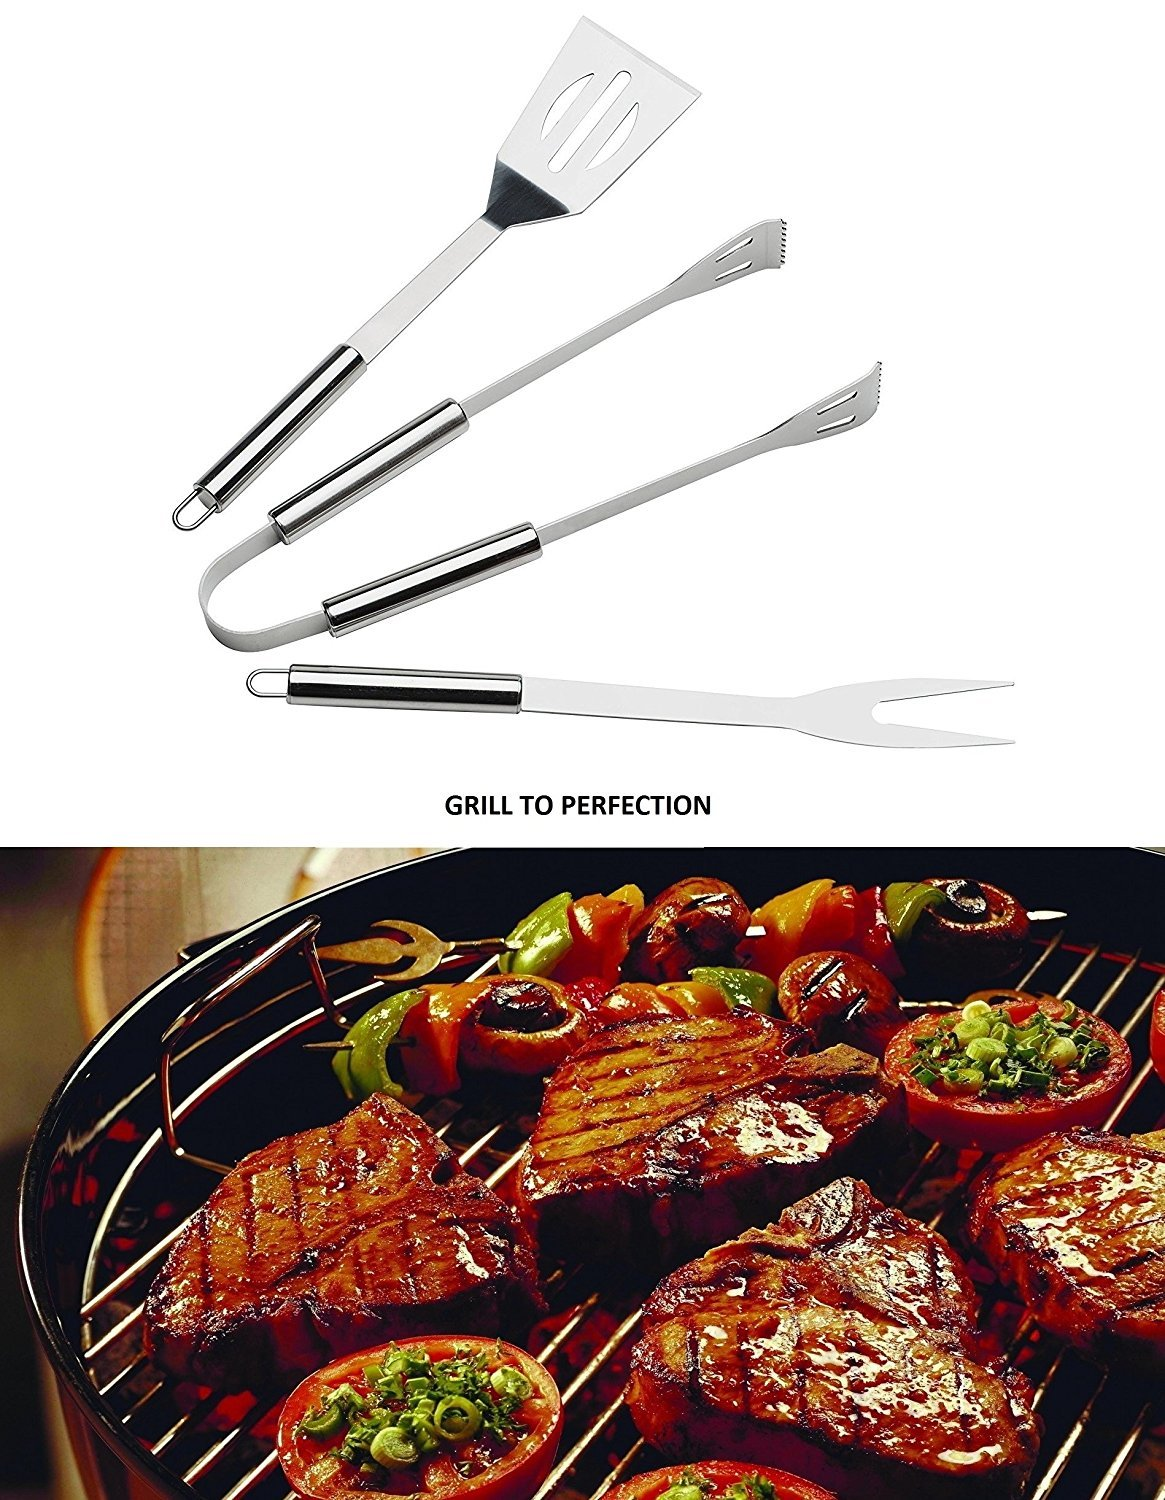 OLIVIA & AIDEN 6 Piece Stainless Steel BBQ Accessory Set - BBQ Spatula, BBQ Tongs, BBQ Fork, Grill Scrubber Brush, Meat Thermometer, Heat Resistant BBQ Glove and Carry Case - Great Value BBQ Tool Set by Olivia's Home Goods (Image #8)